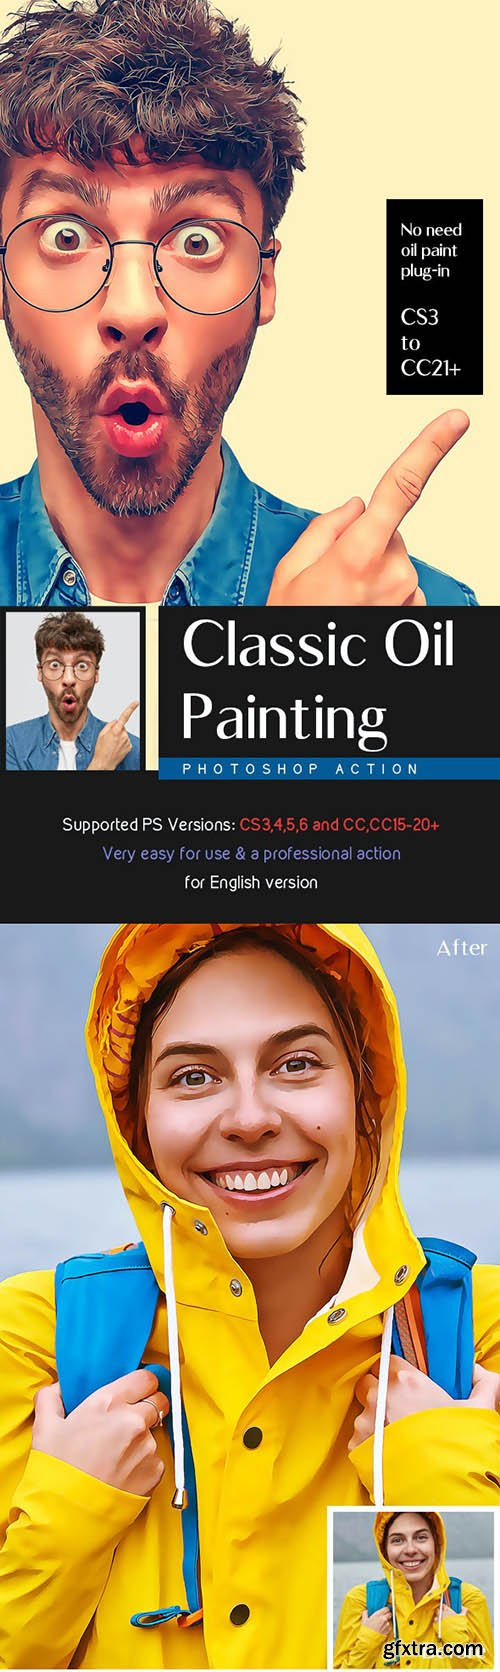 GraphicRiver - Classic Oil Painting Action 29650425